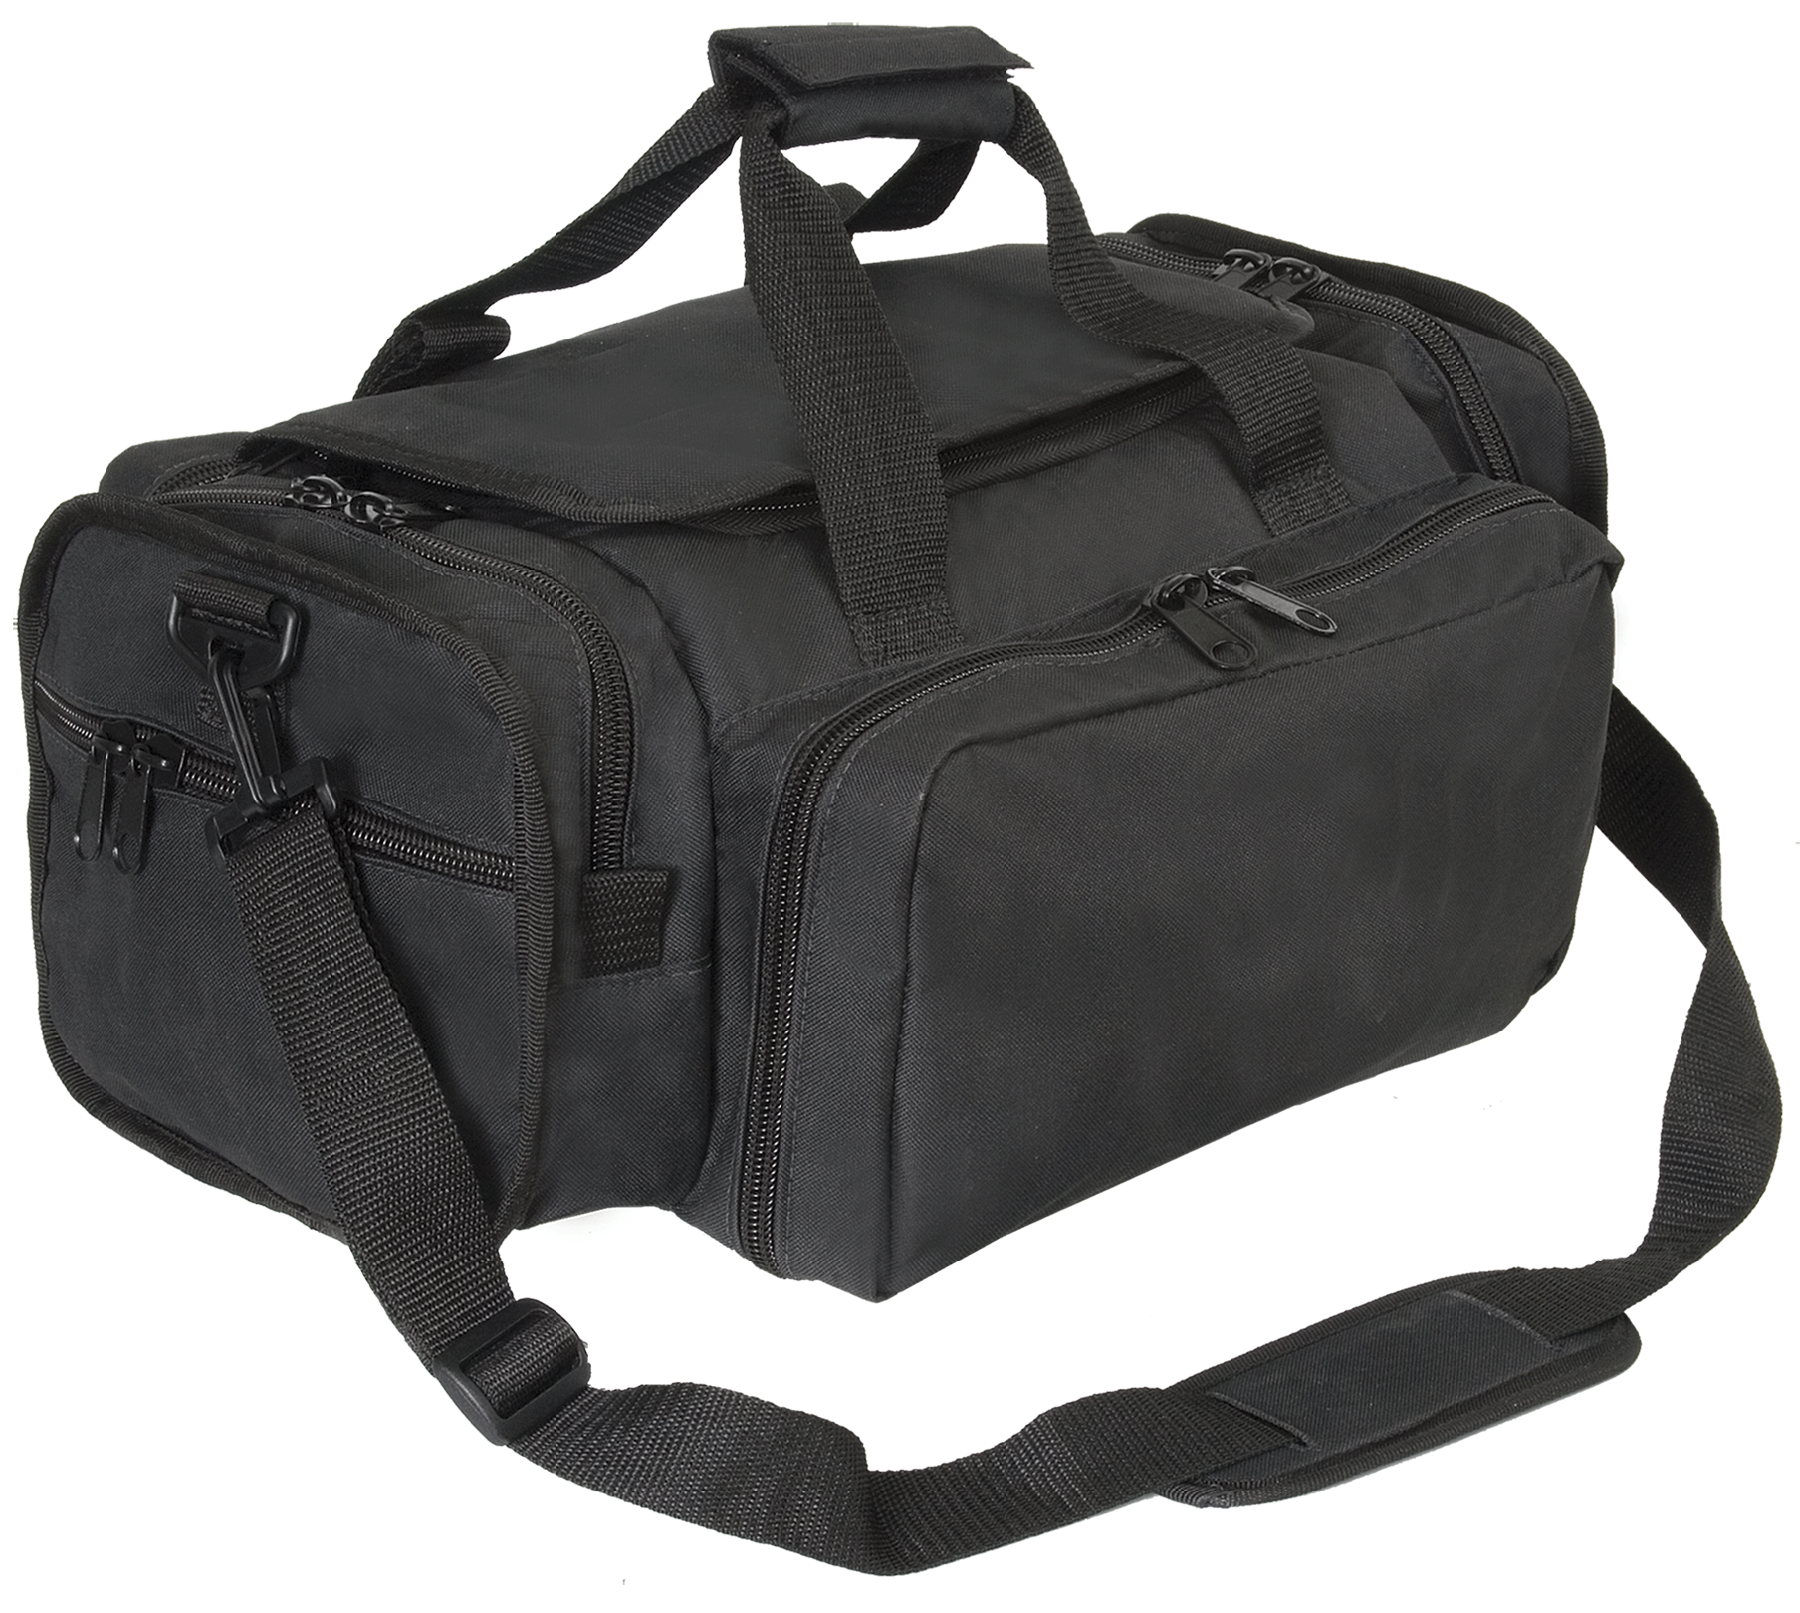 Max Ops 28116 Extreme-Duty Tactical Range Bag 18